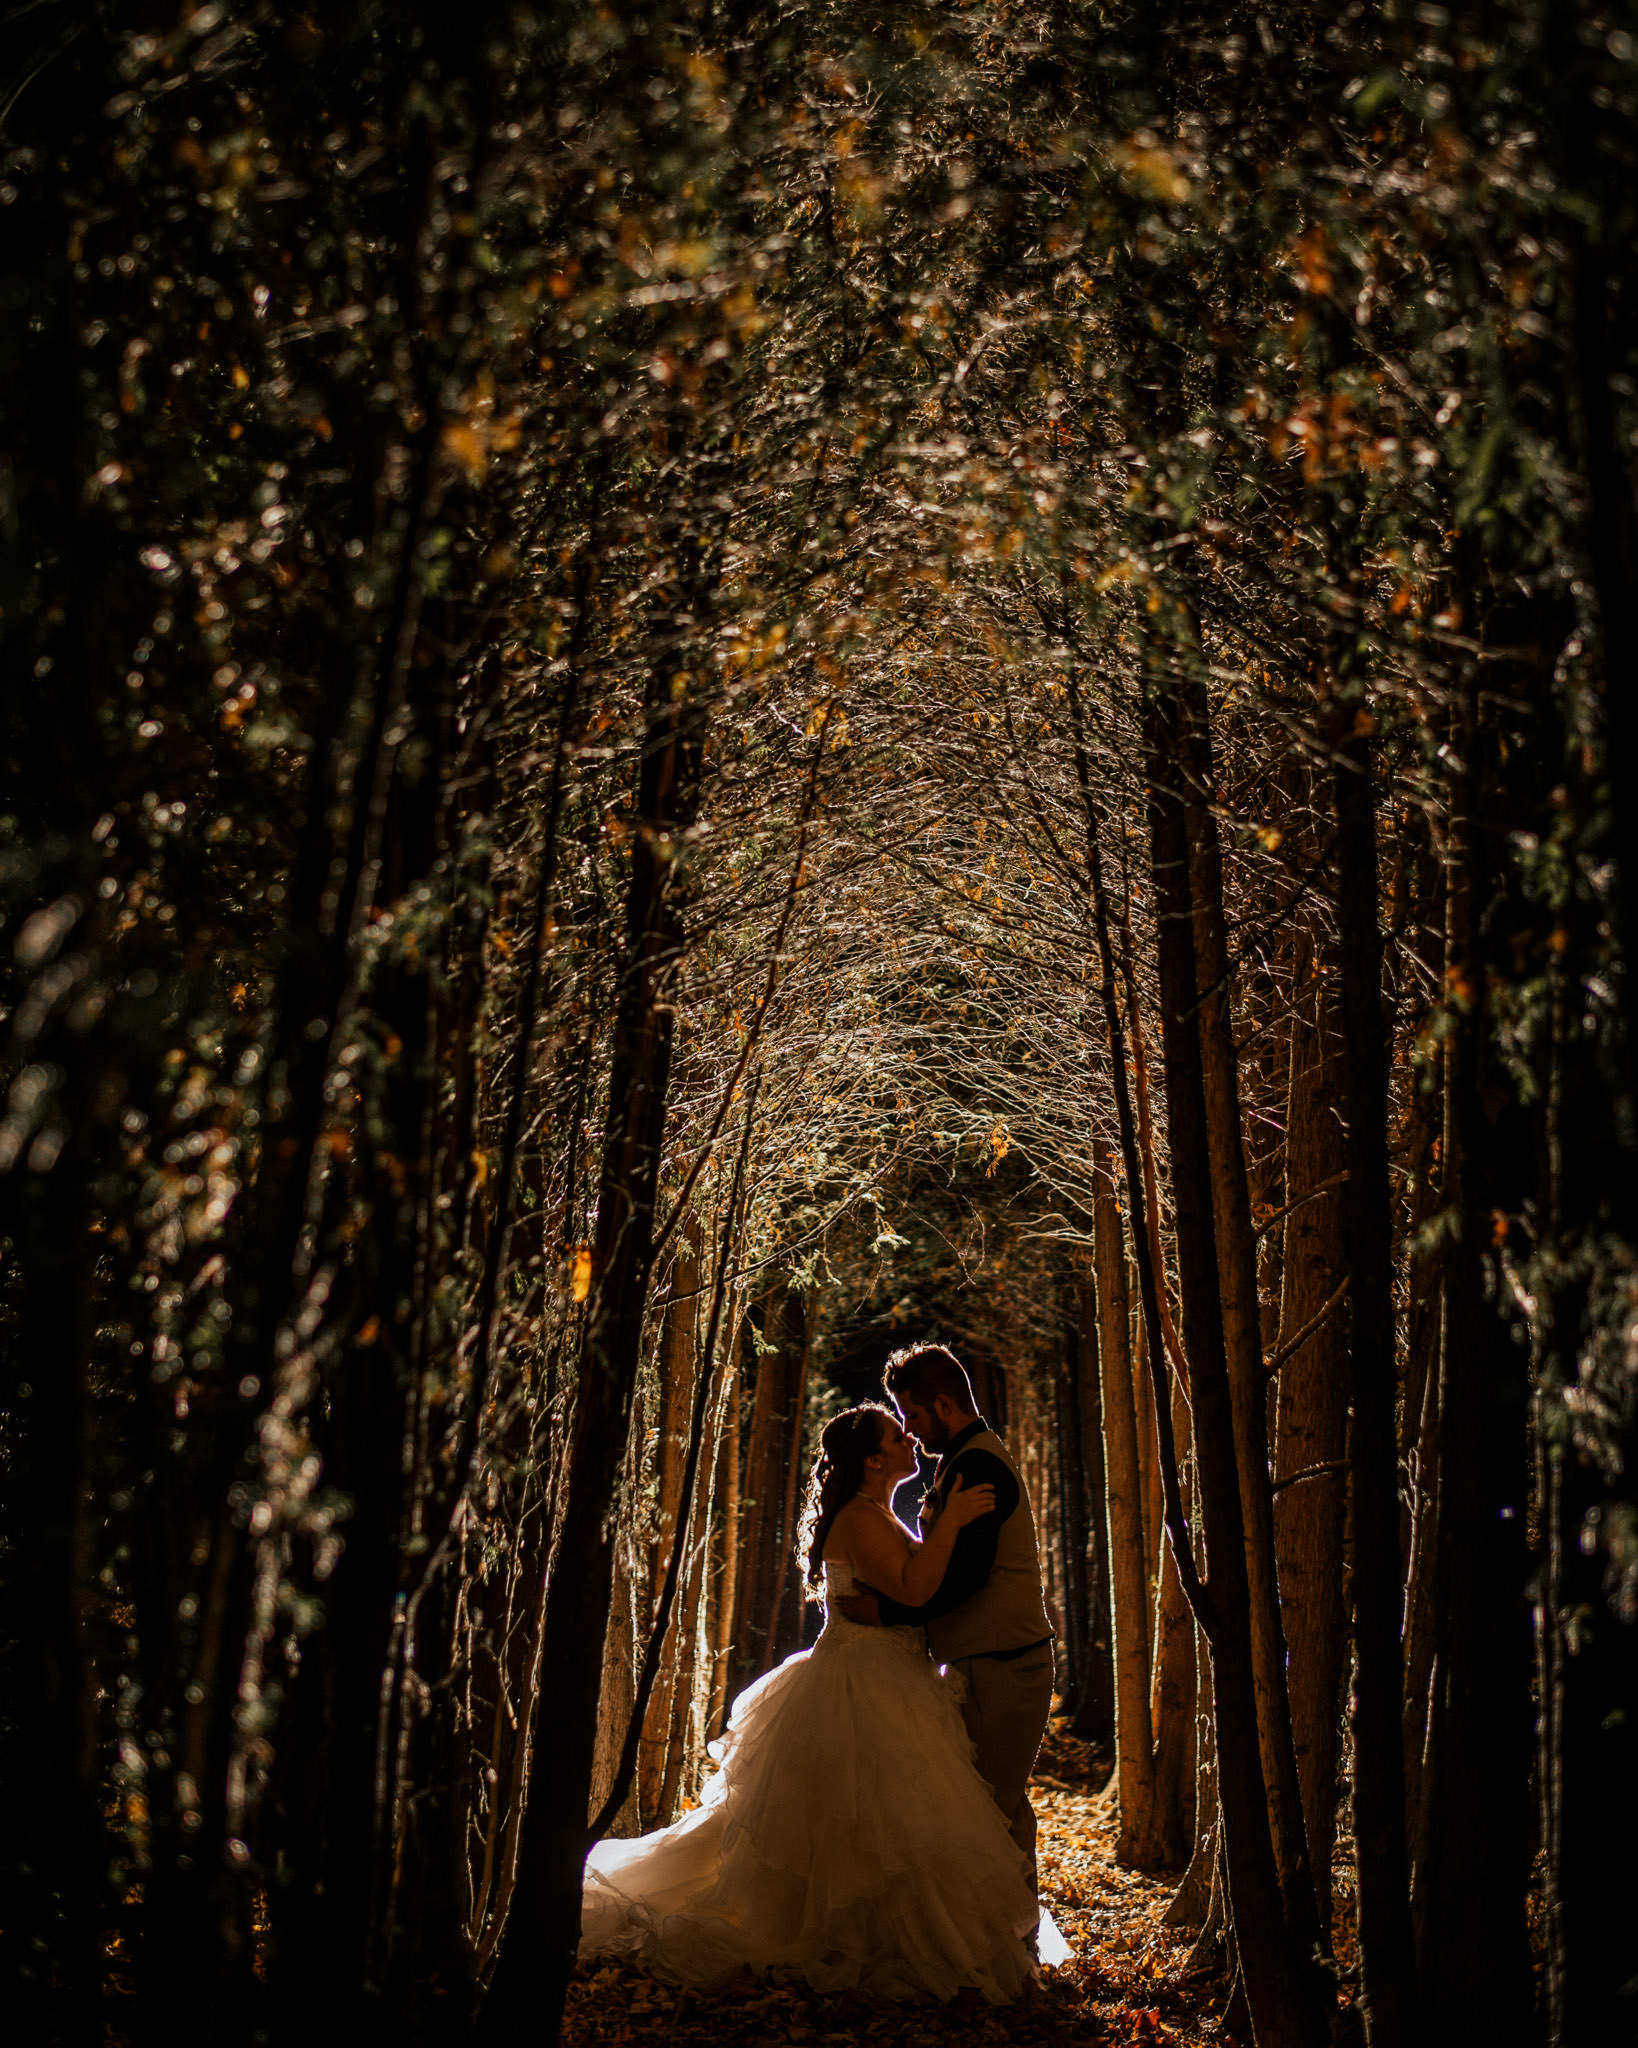 tree-tunnel-night-portrait-001.jpg